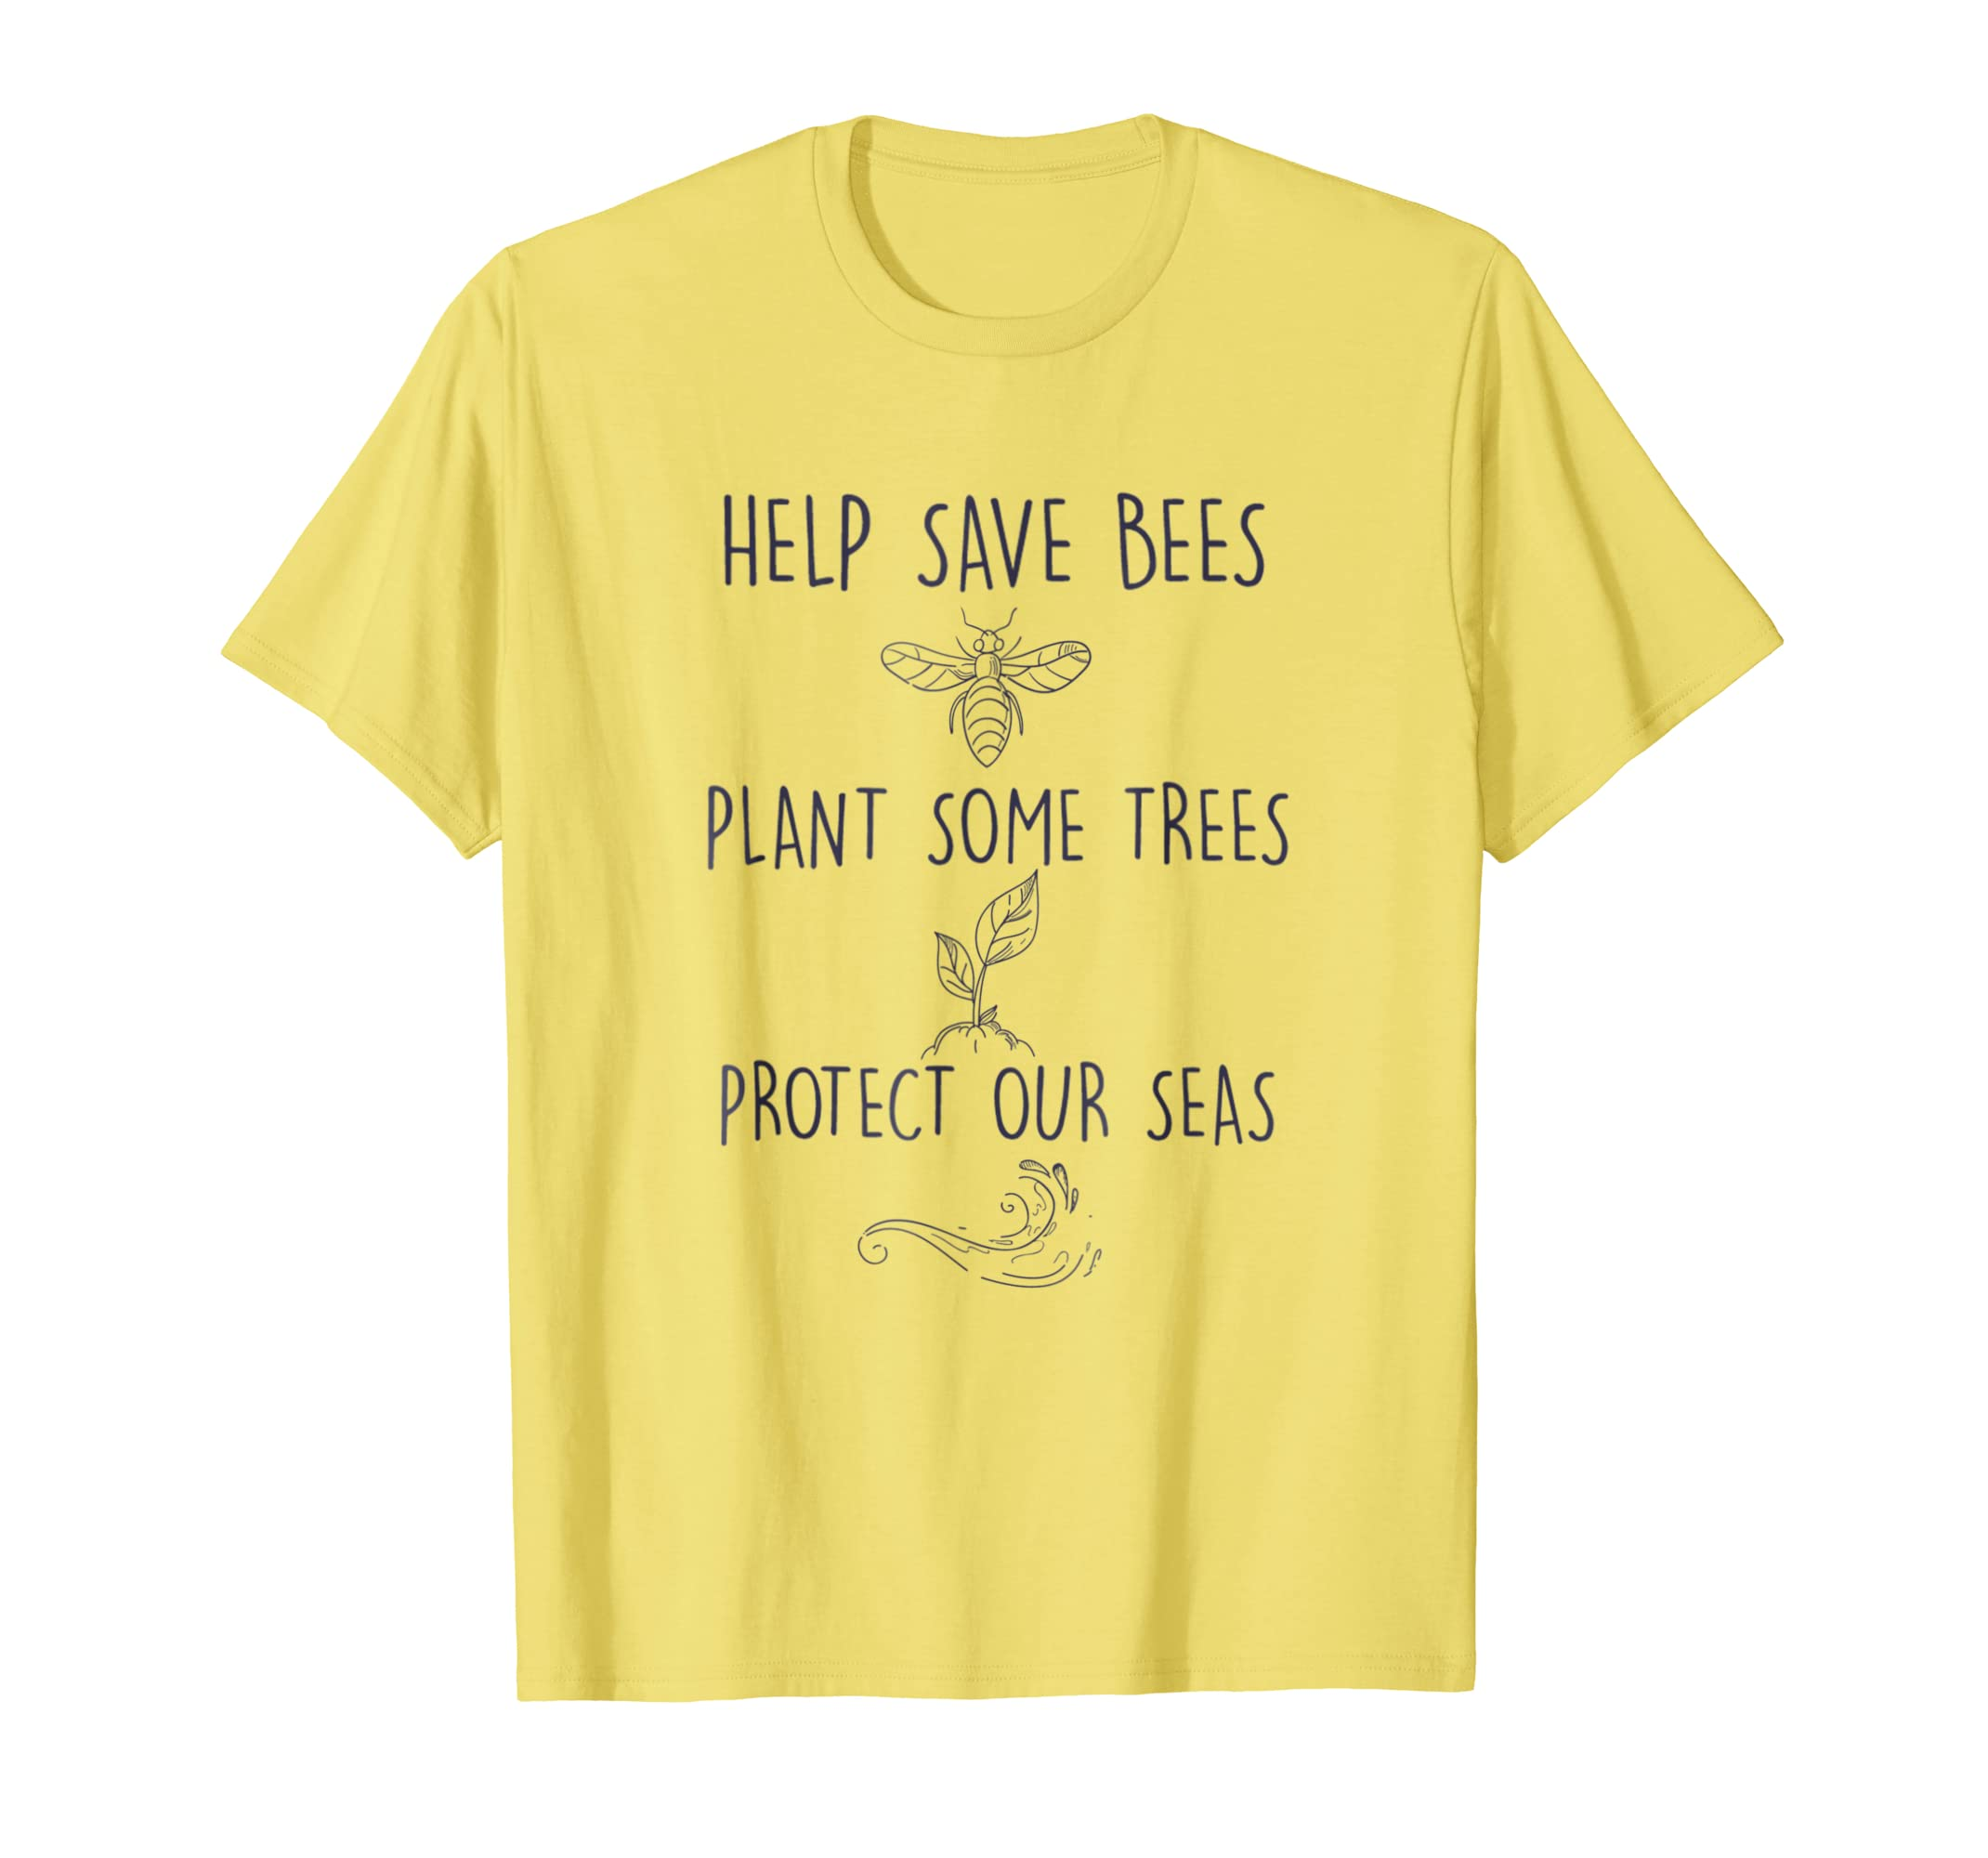 5d4beea1f42b0 Amazon.com: Help More Bees Plant More Trees Clean The Seas Yellow ...